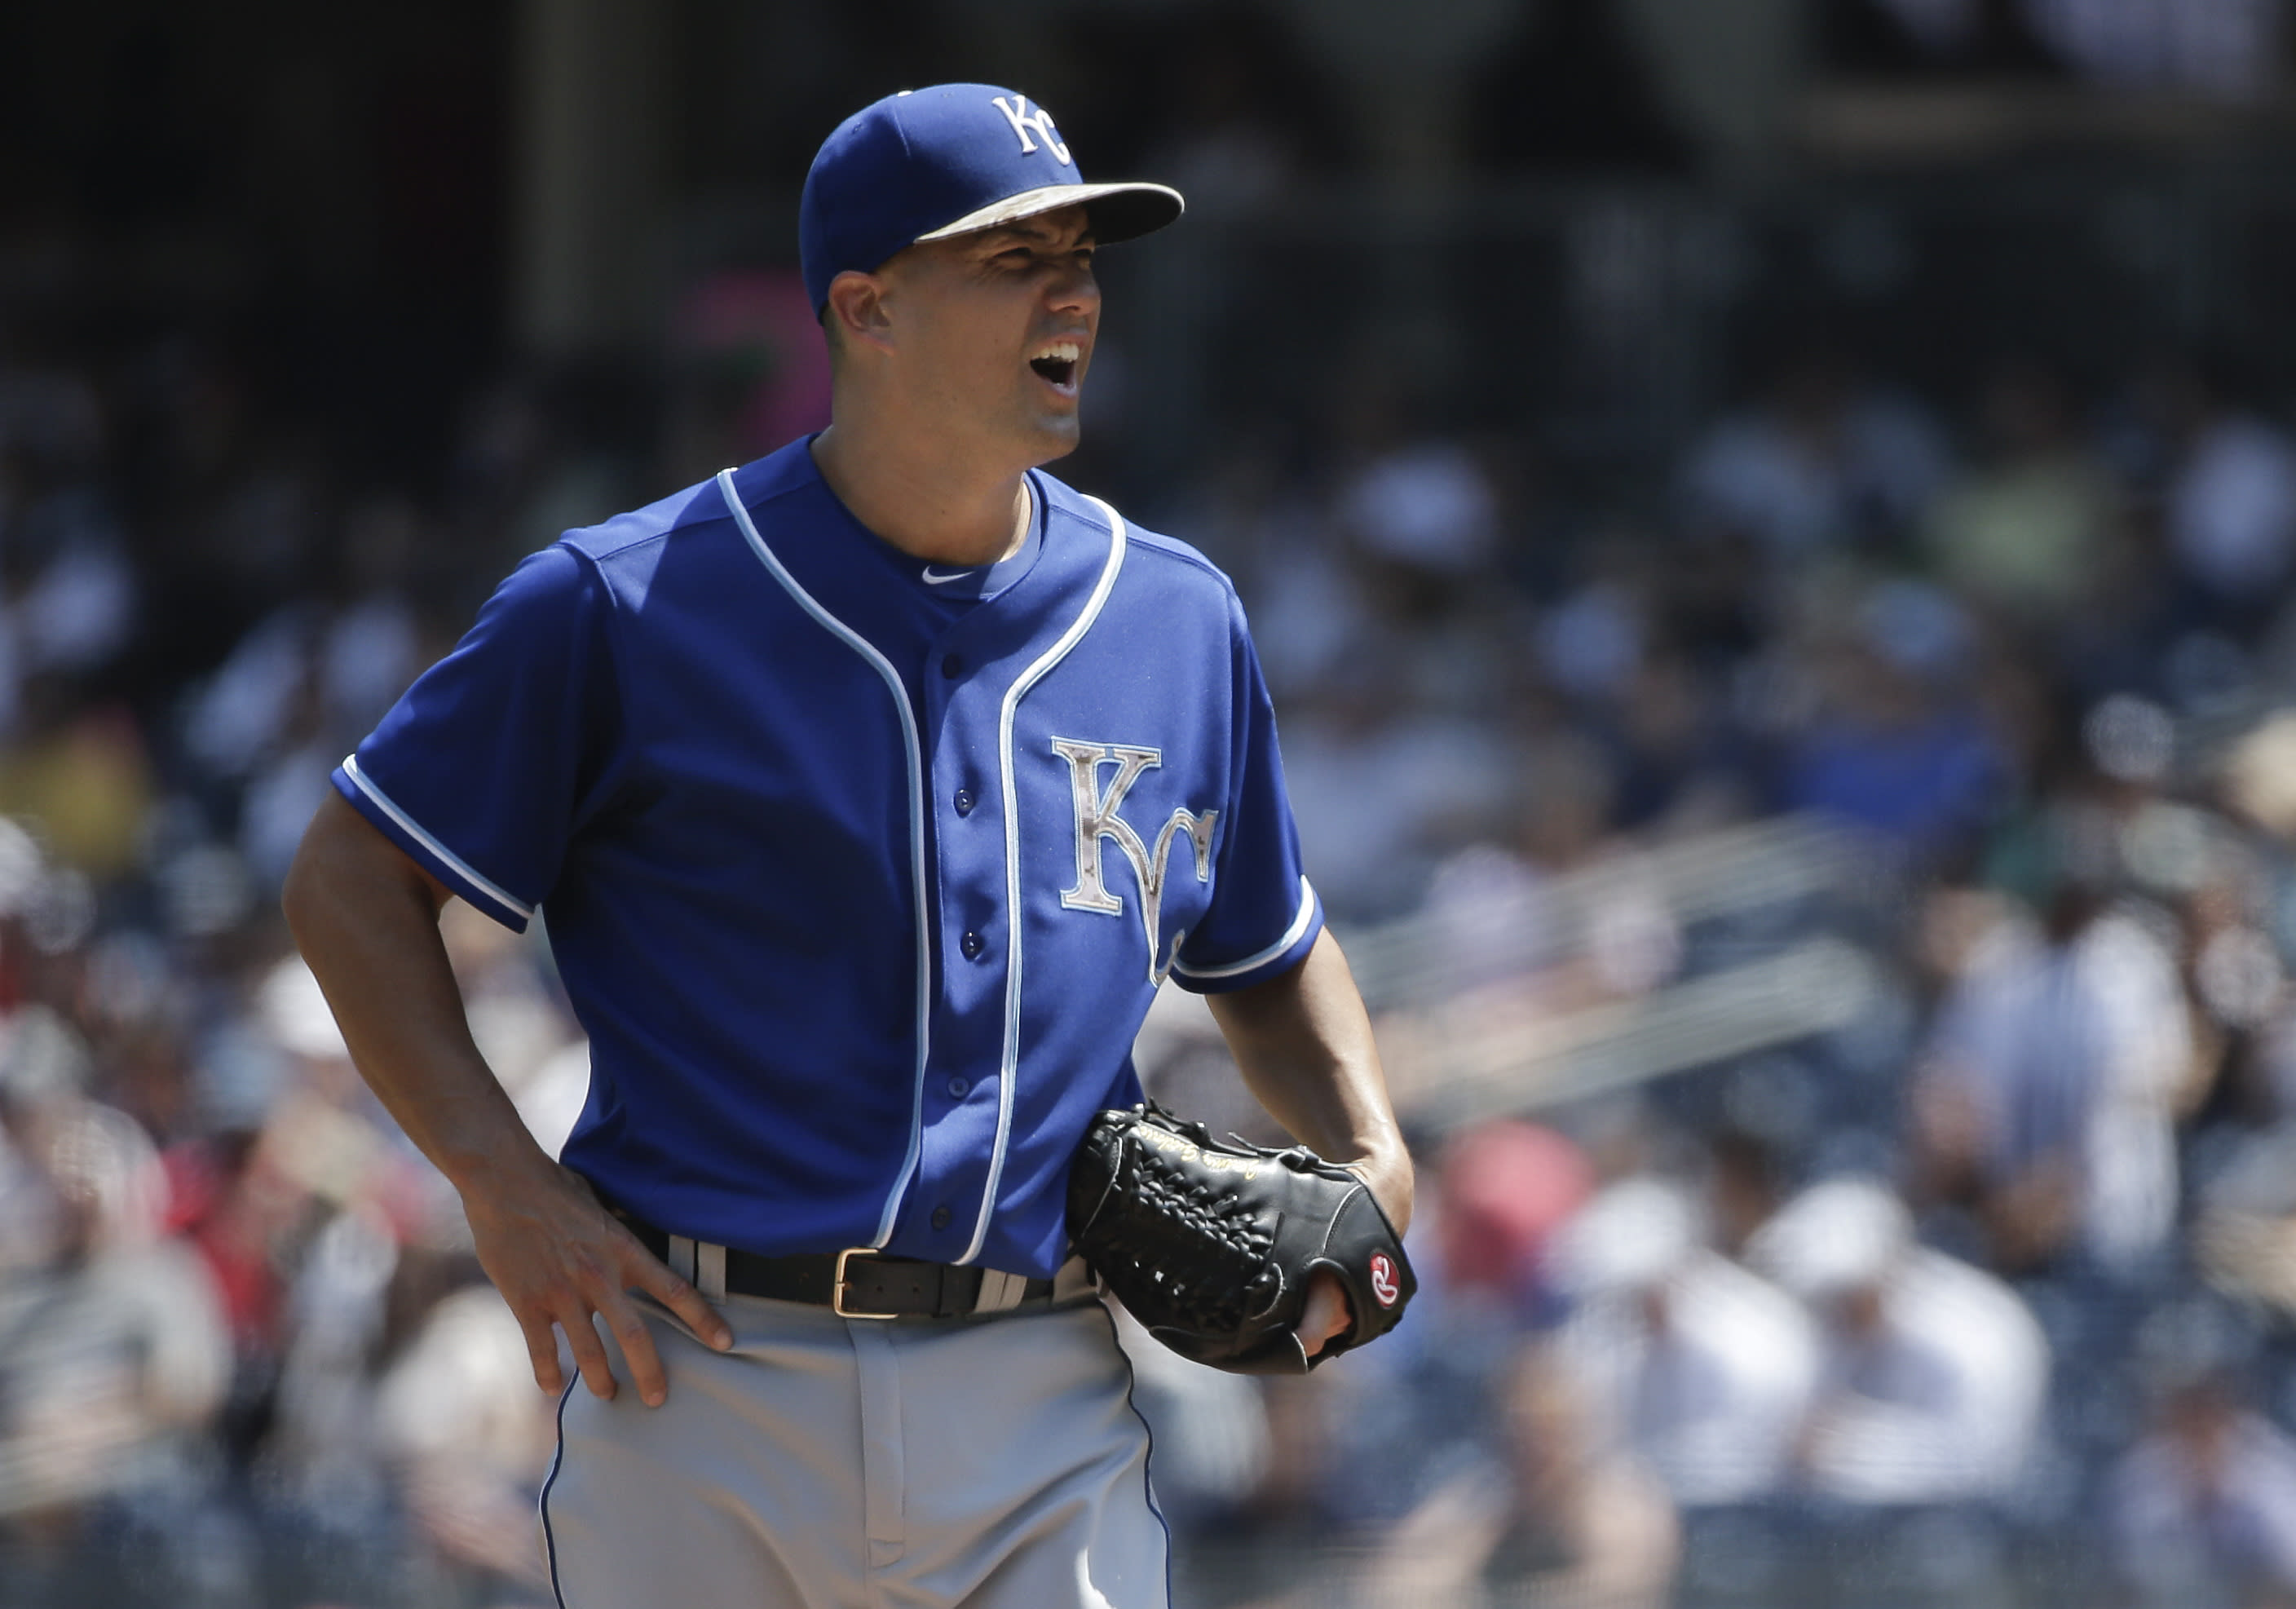 Royals' Jeremy Guthrie has one of the worst starts in MLB history